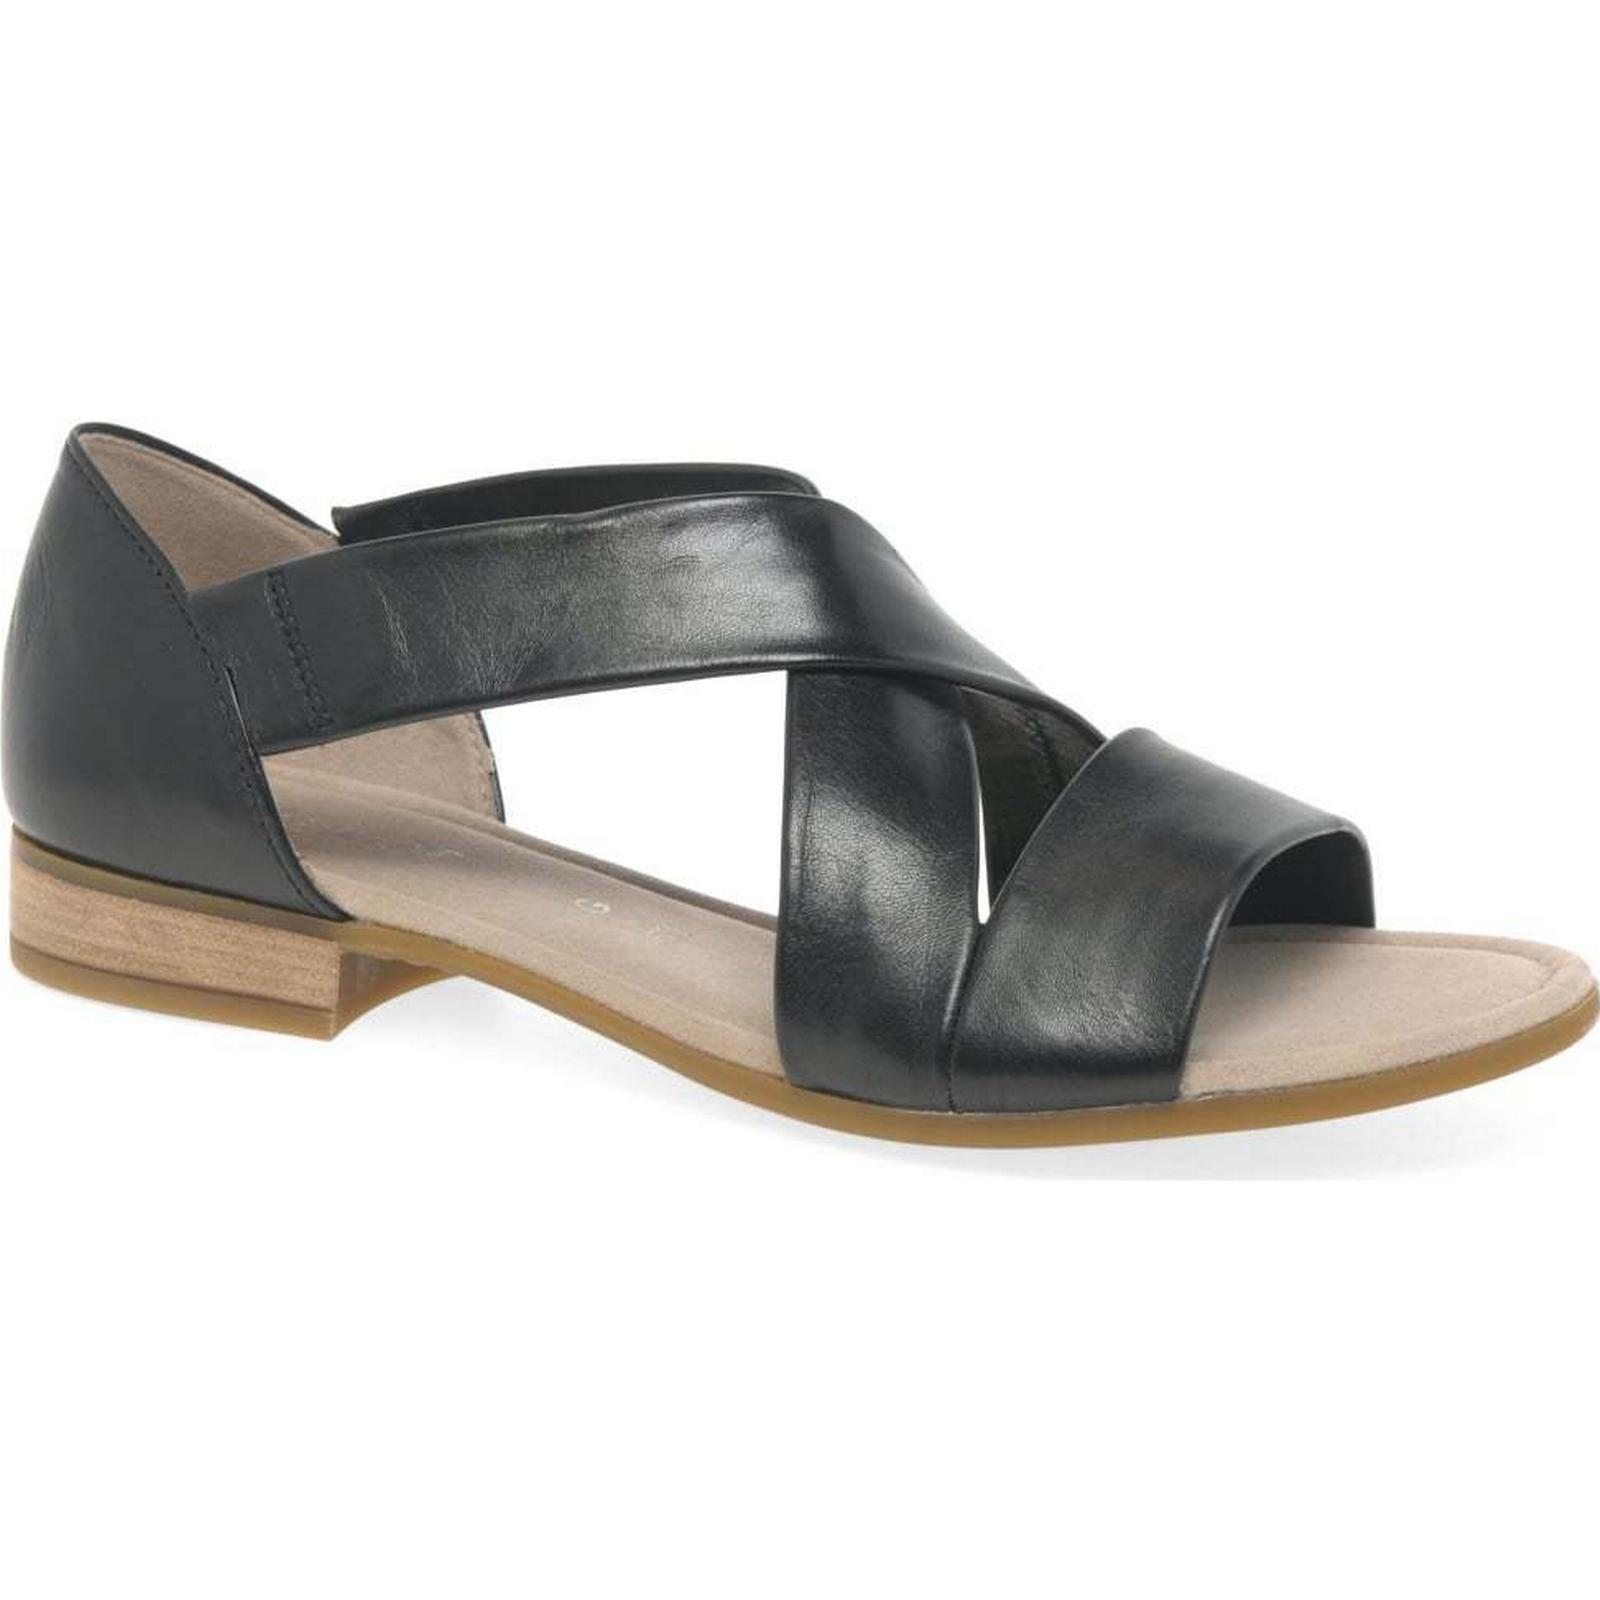 Gabor Sweetly Colour: Womens Casual Sandals Colour: Sweetly Black, Size: 5.5 6adf32